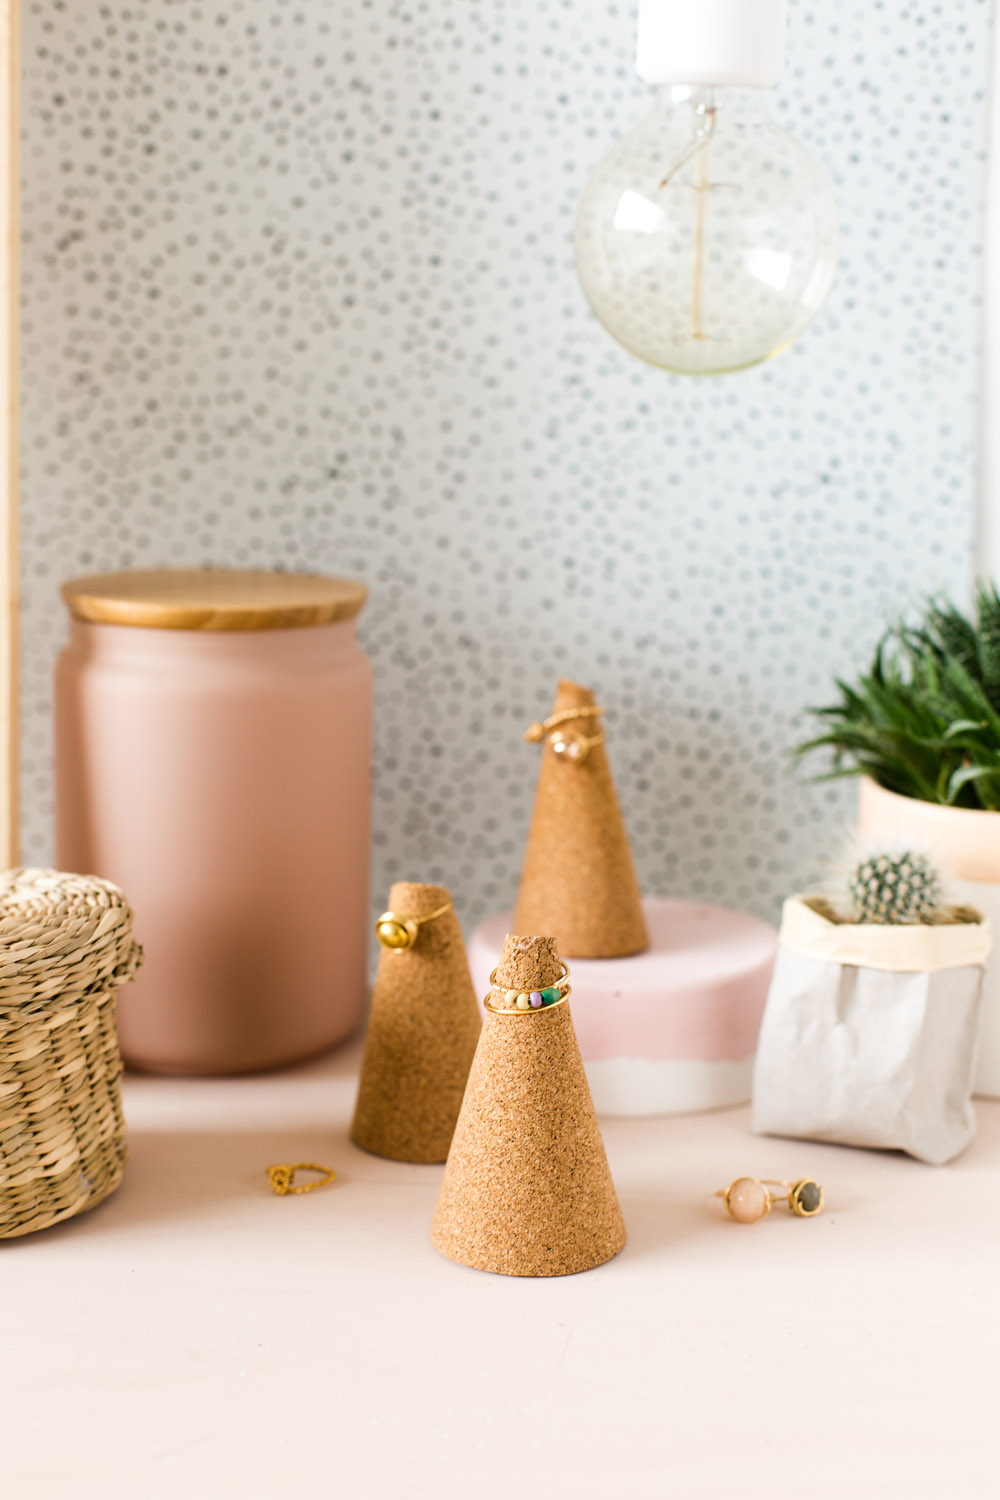 DIY Five Minute Make Cork Ring Cones | @fallfordiy